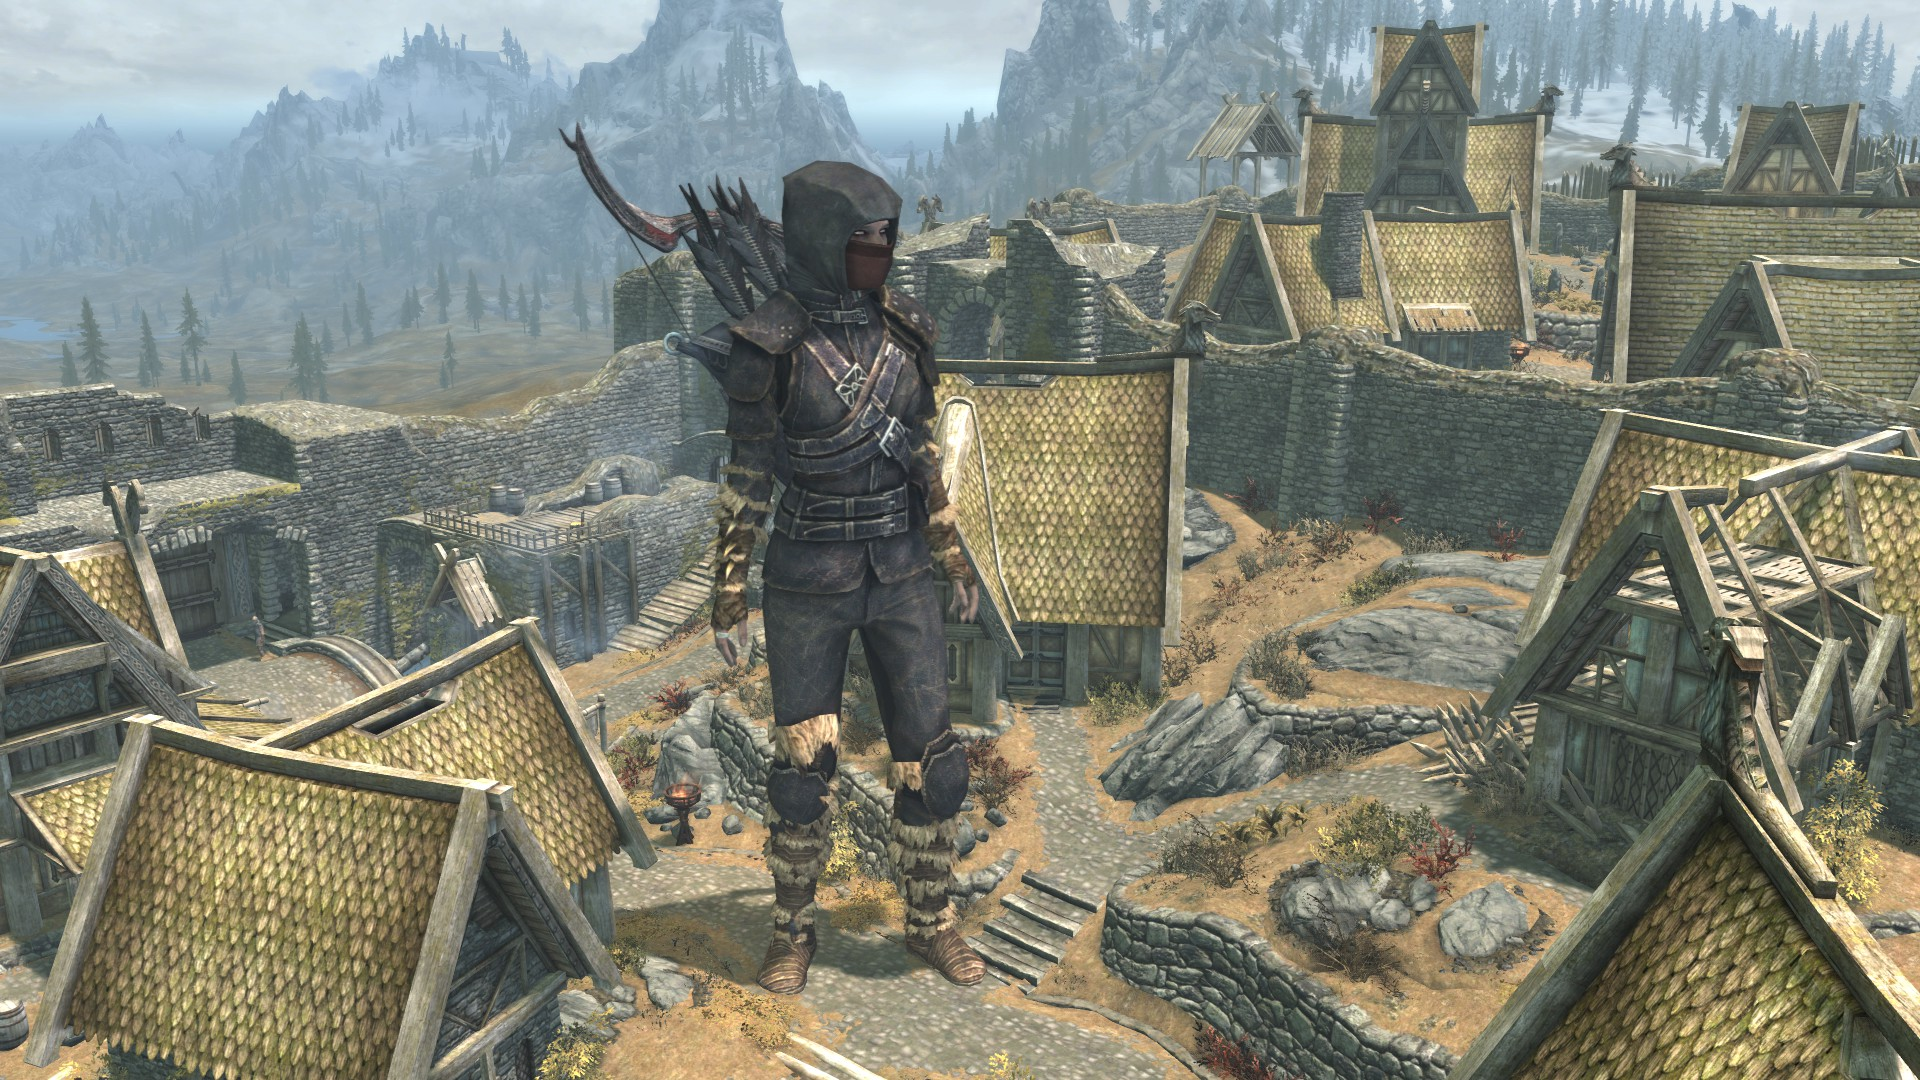 How to use codes on Skyrim on the souls of dragons 27